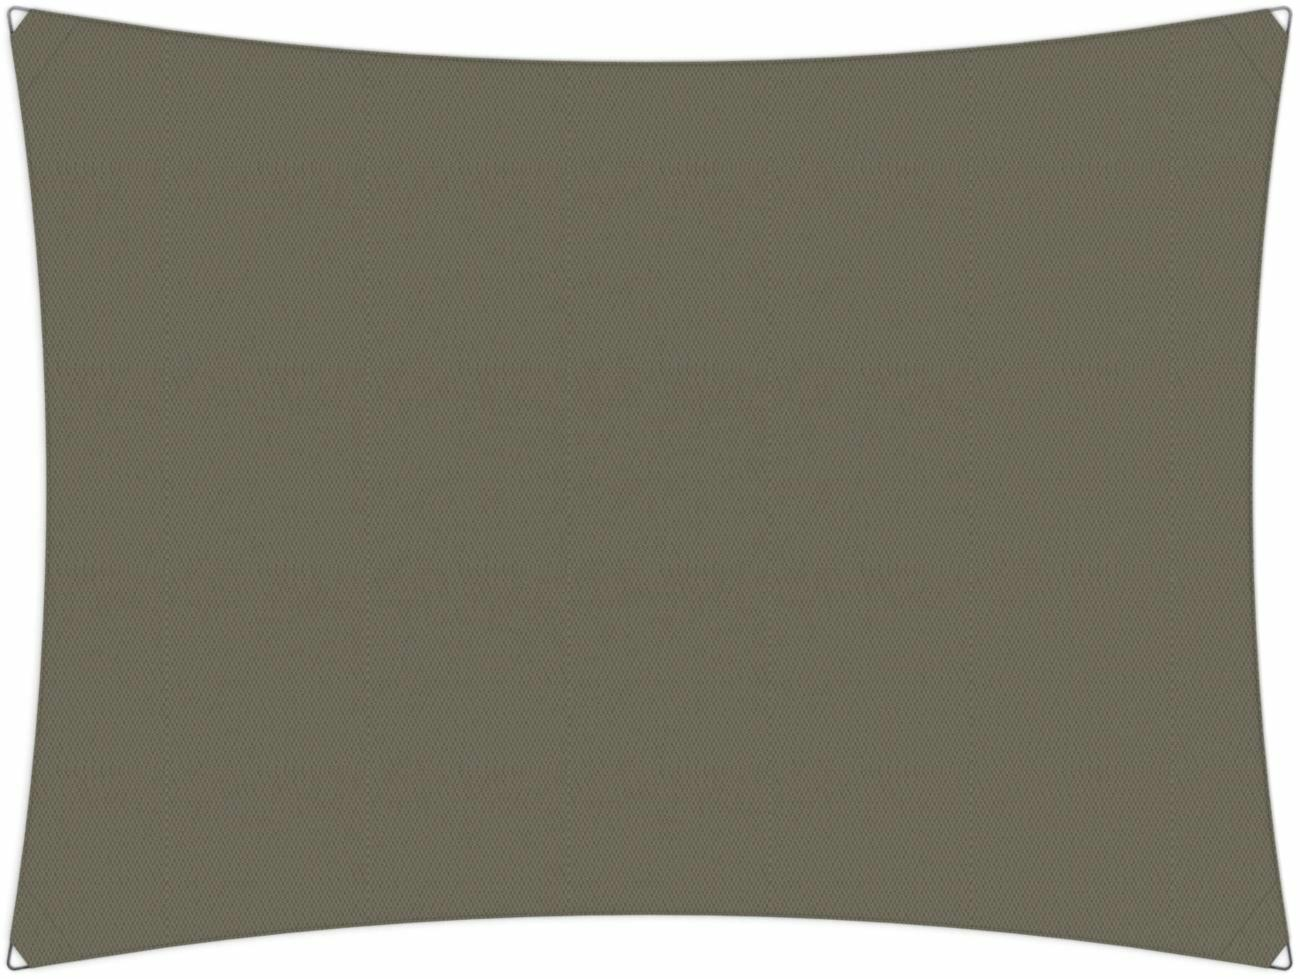 Ingenua shade sail Rectangle 4 x 3 m, for outdoor use. Colour of the fabric shade sail Taupe.